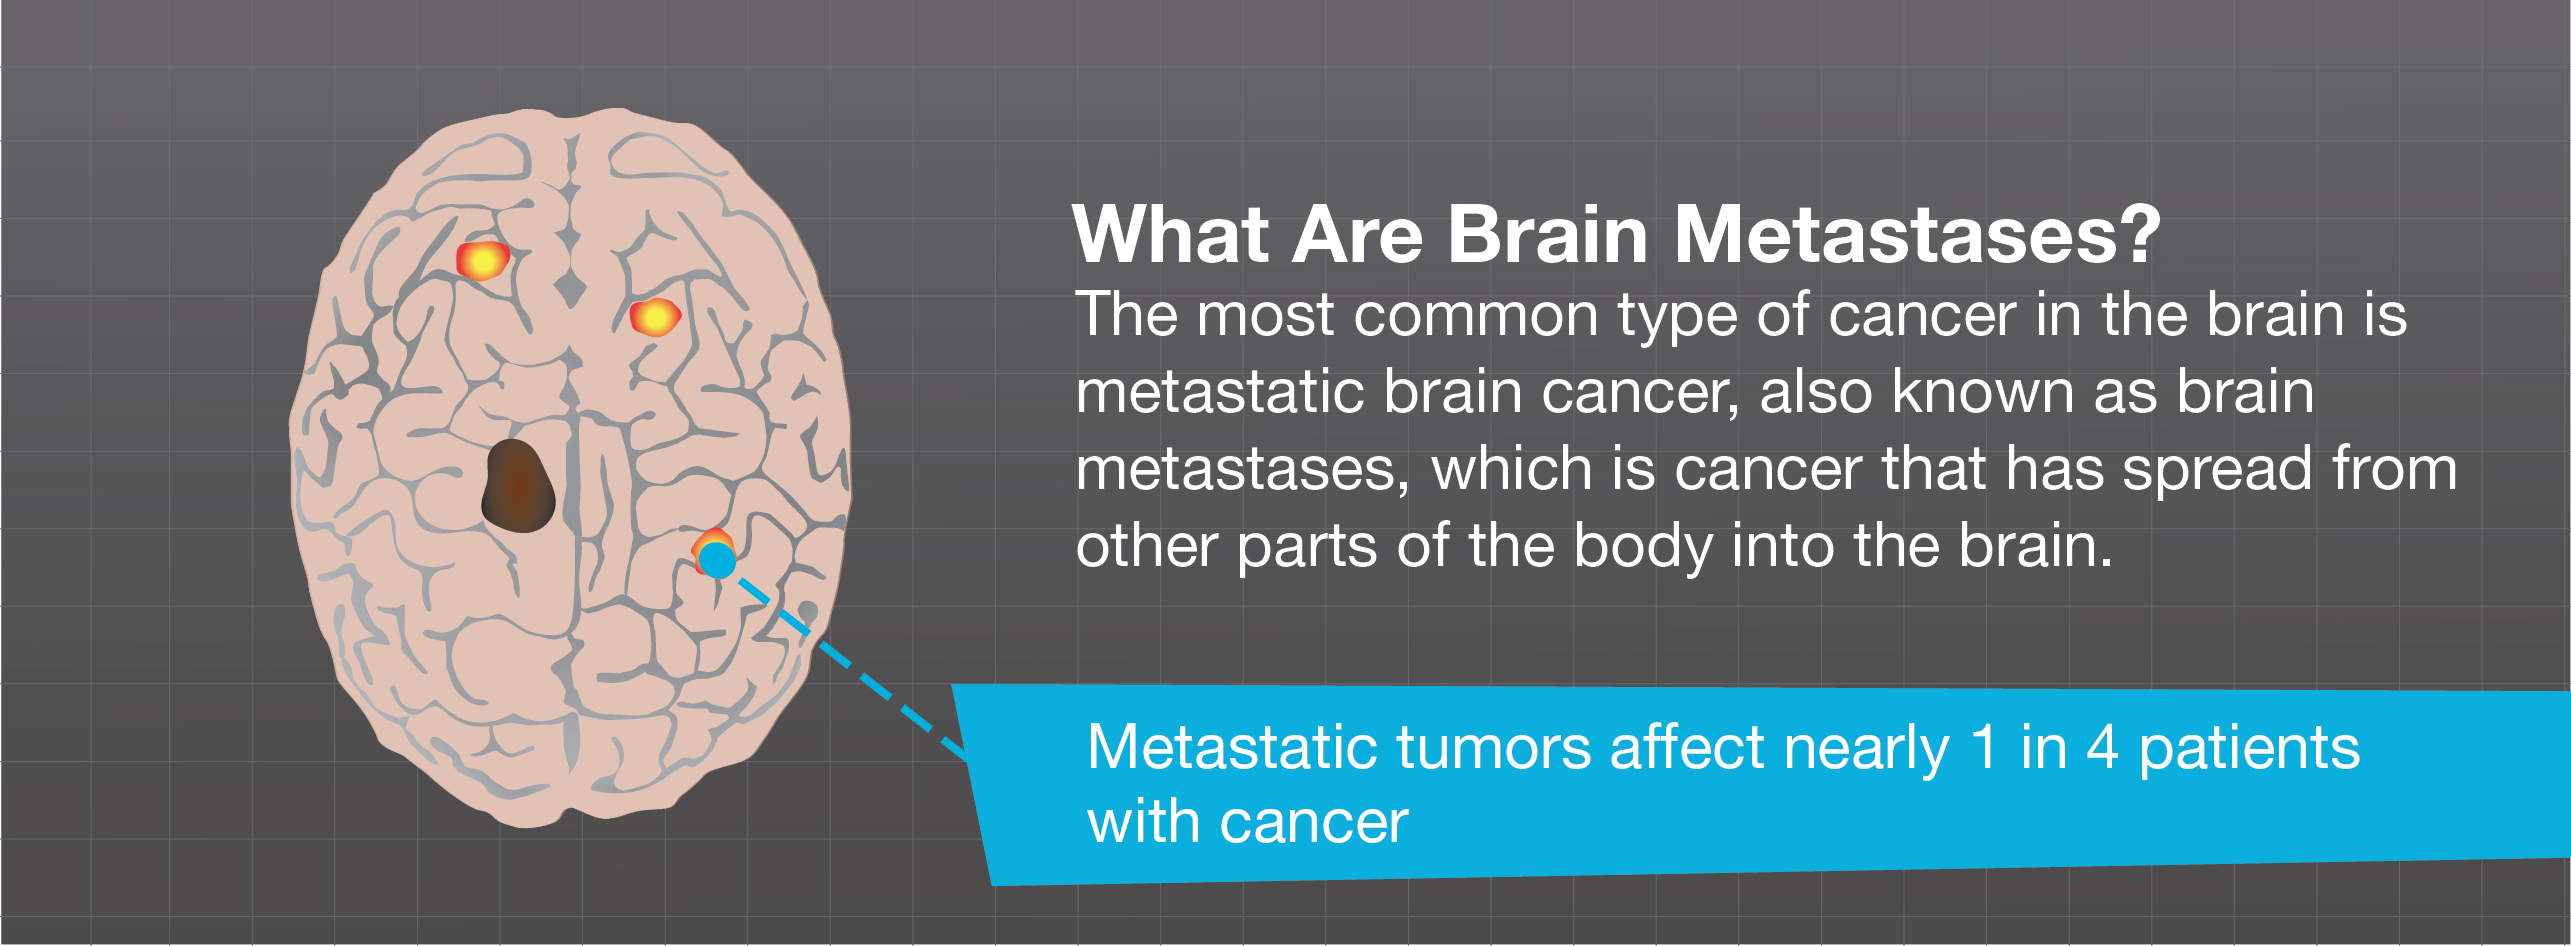 What Are Brain Metastases